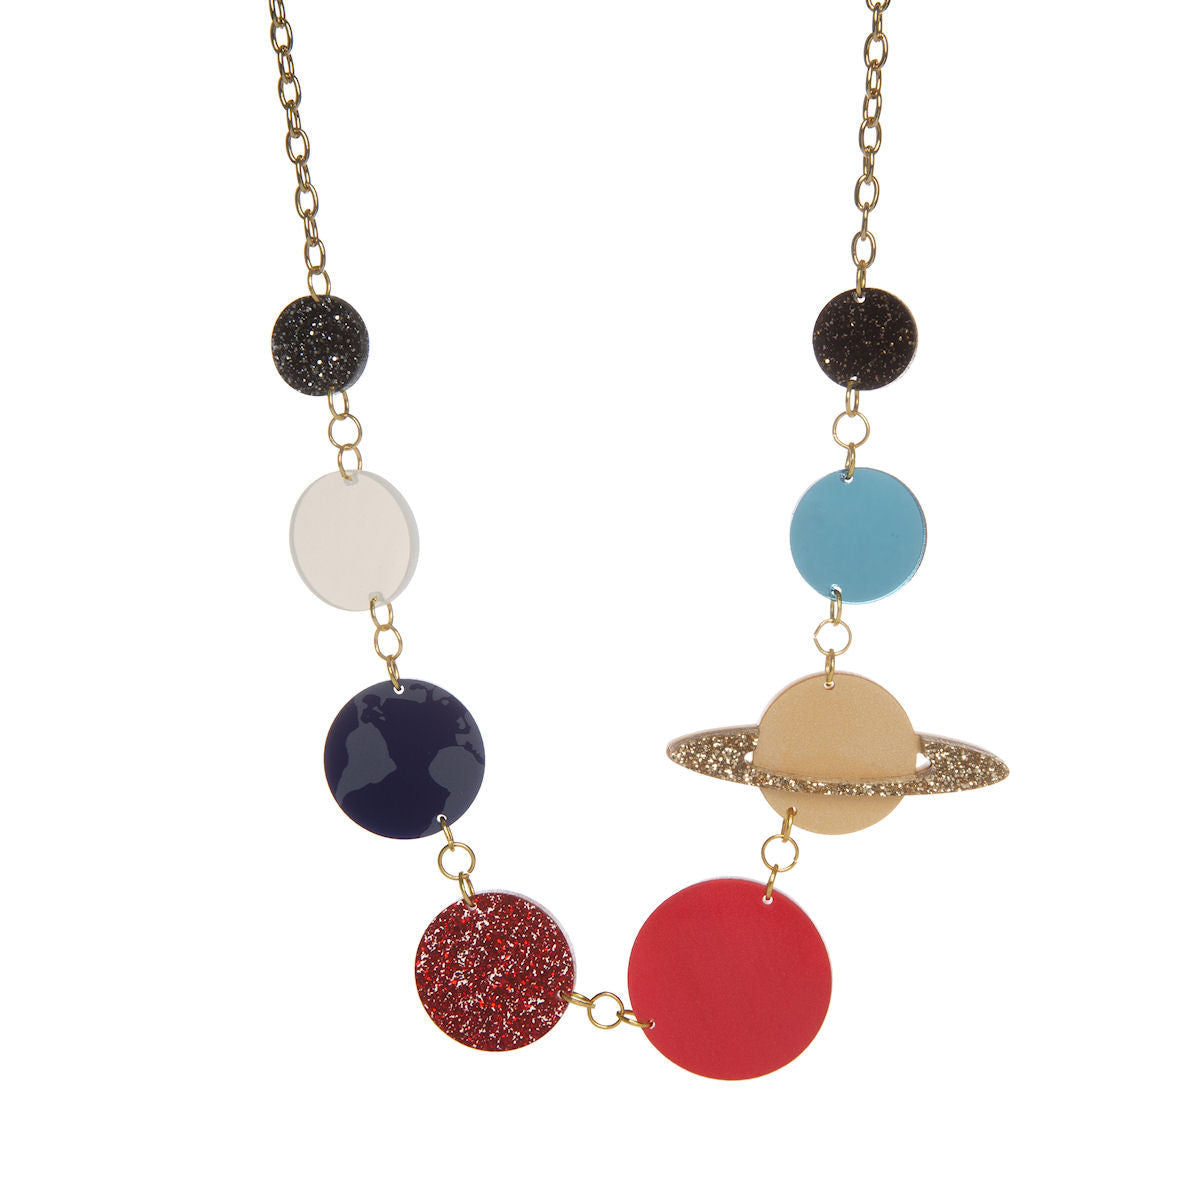 Sugar & Vice Solar System Necklace